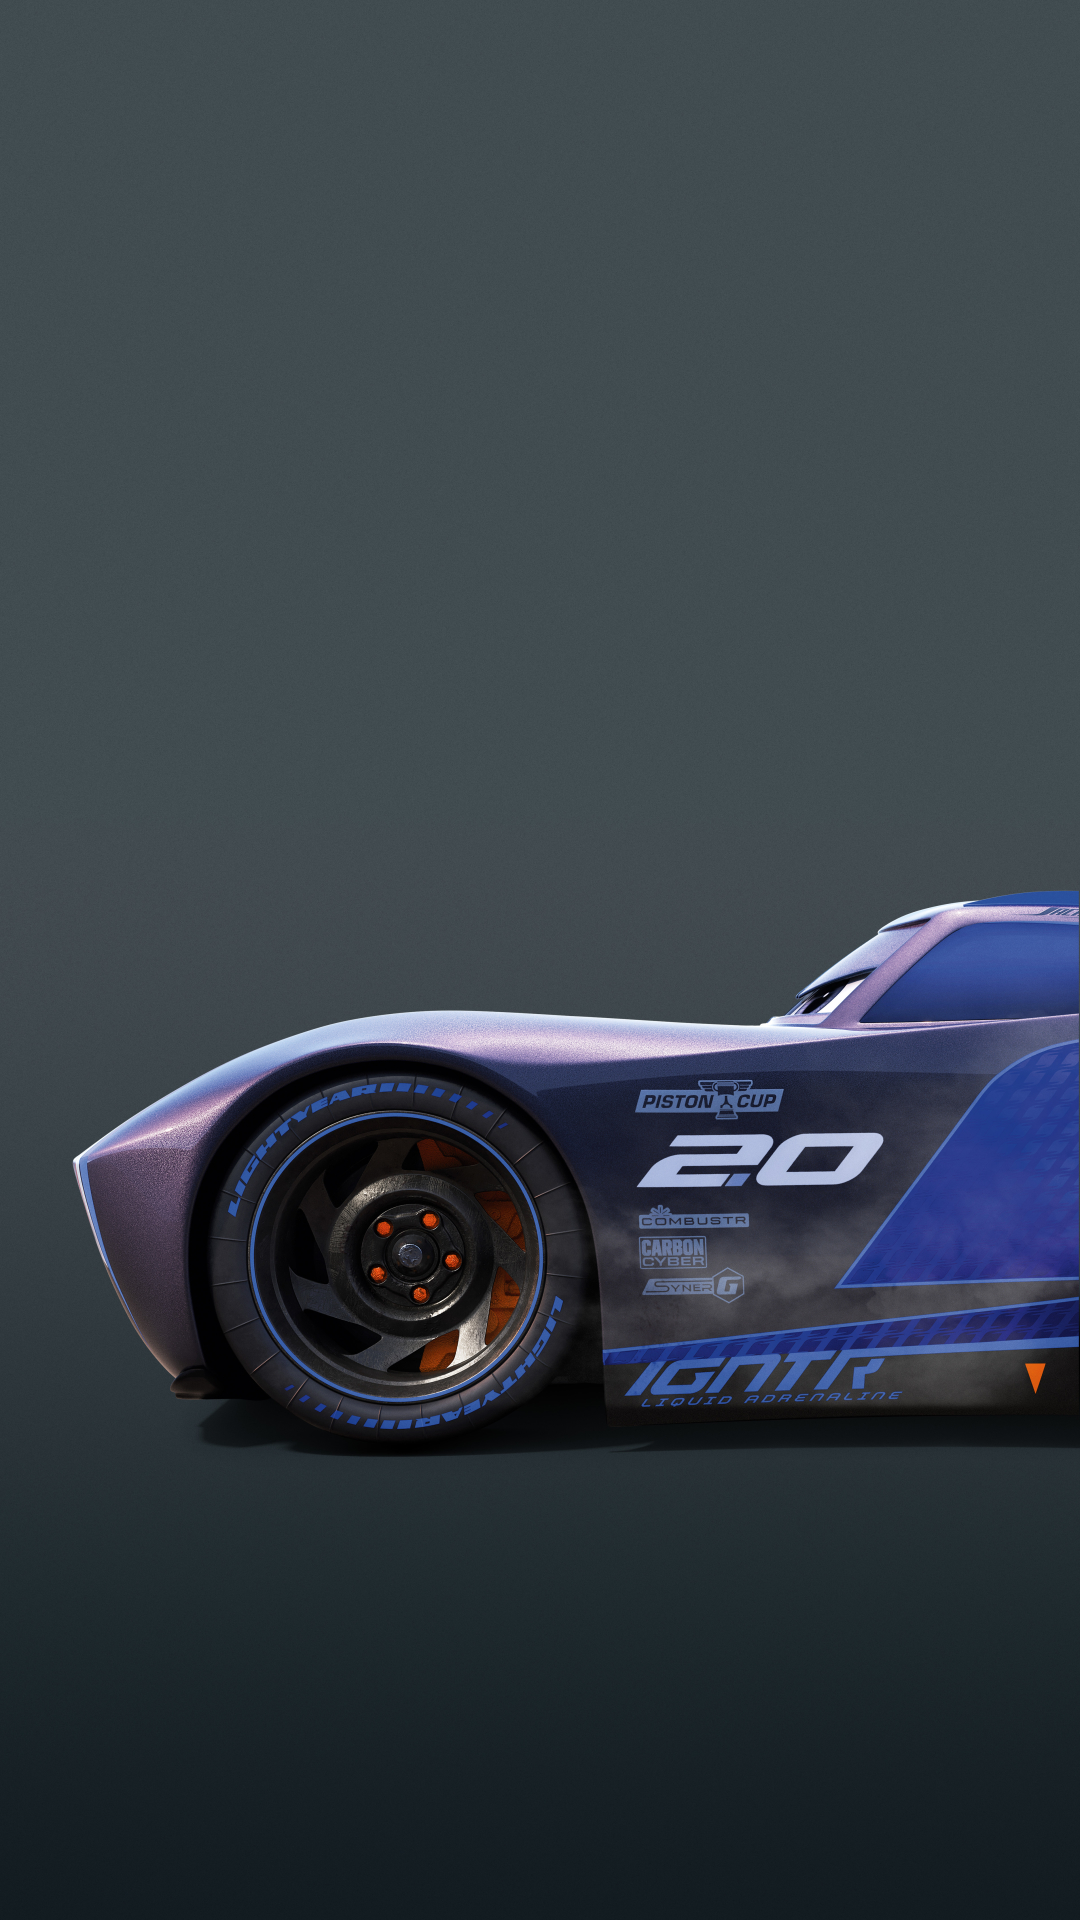 Movie Cars 3 1080x1920 Wallpaper Id 725136 Mobile Abyss